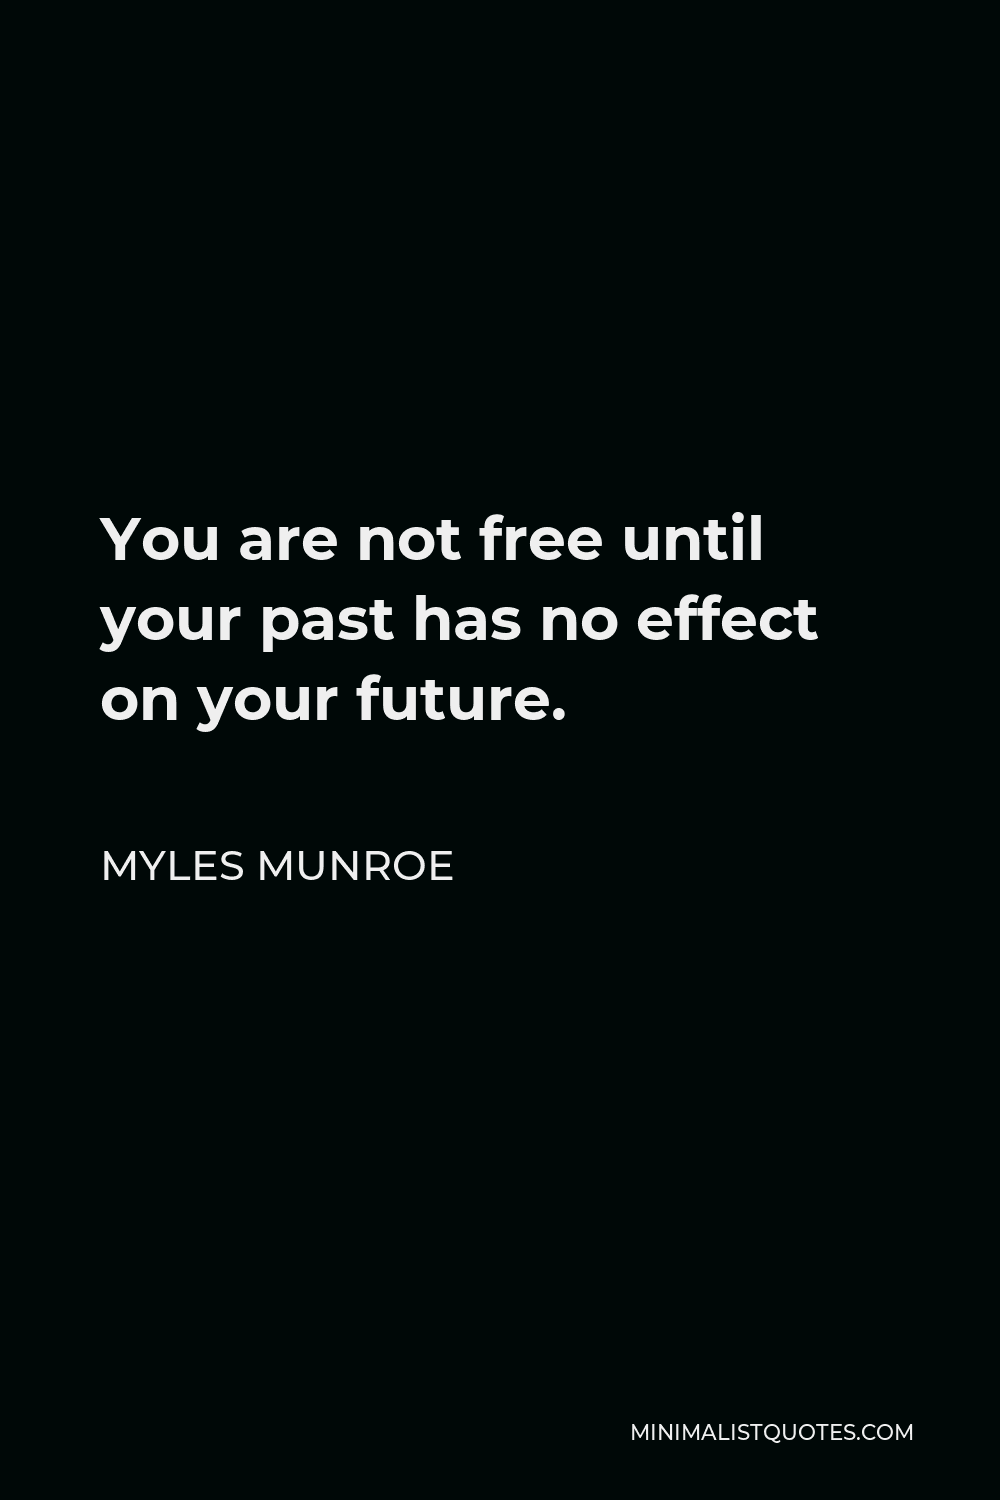 Myles Munroe Quote - You are not free until your past has no effect on your future.